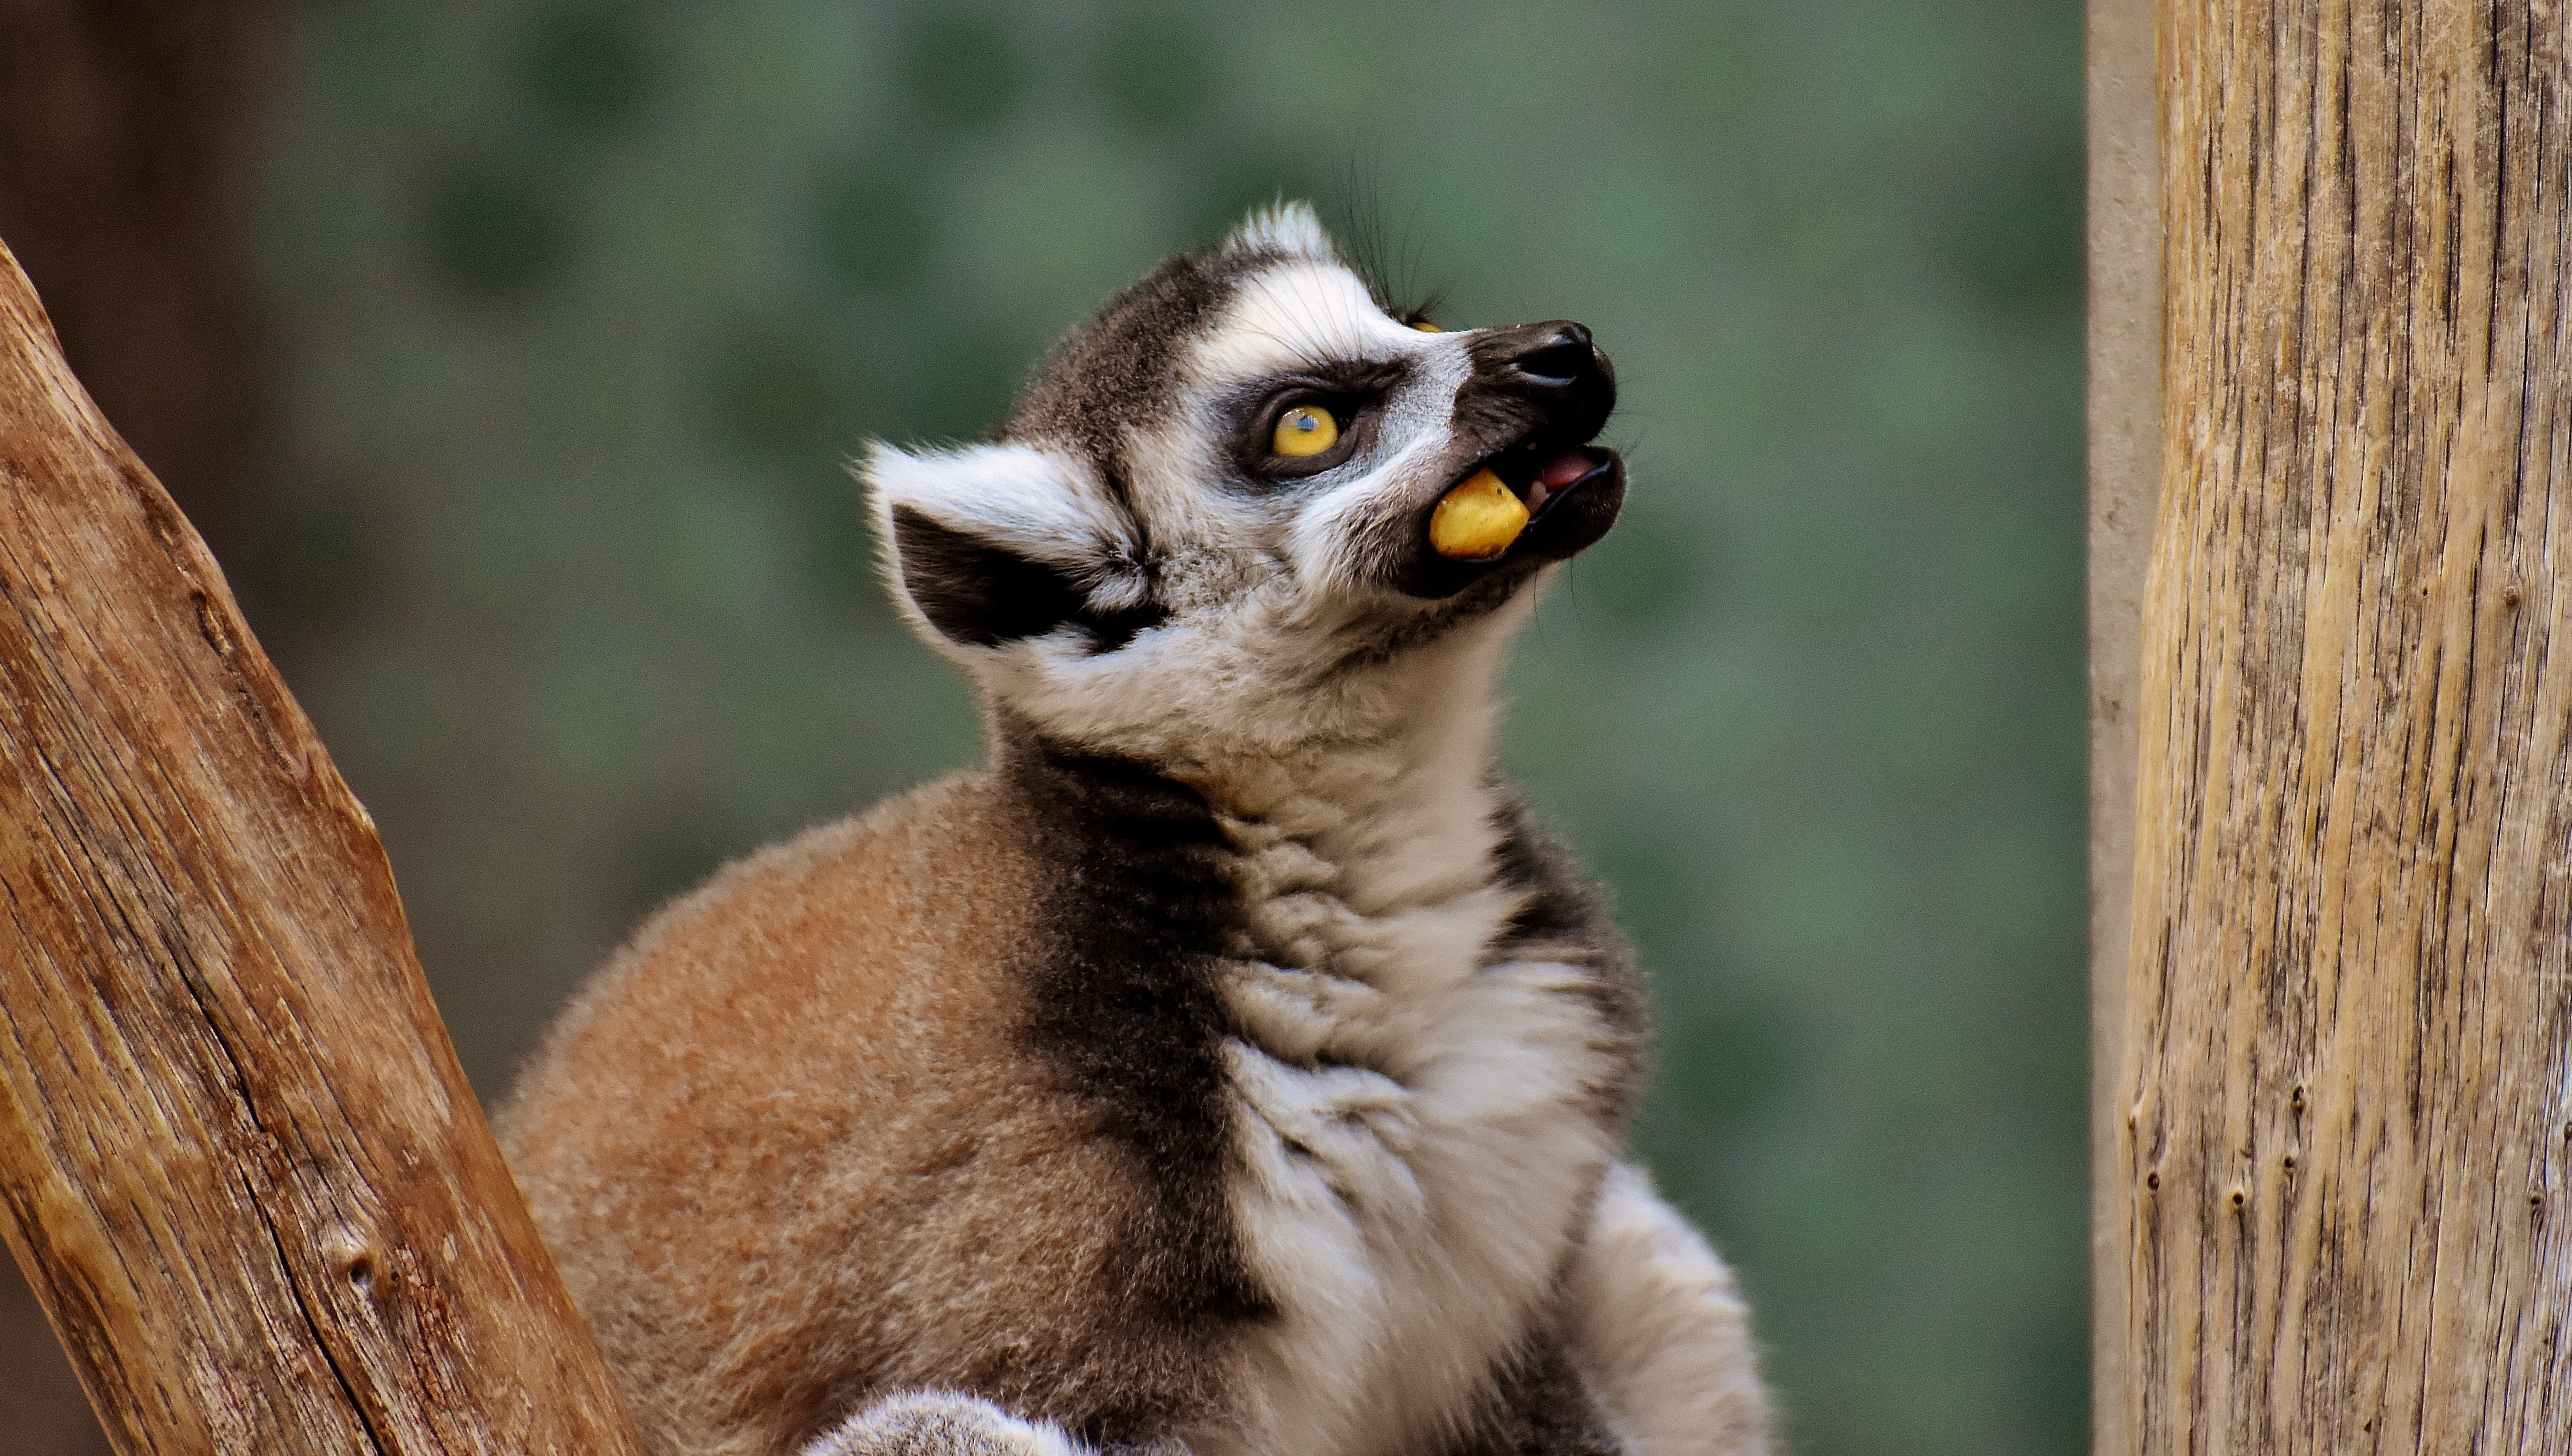 113417 download wallpaper Animals, Lemur, Muzzle, Sight, Opinion, Food screensavers and pictures for free